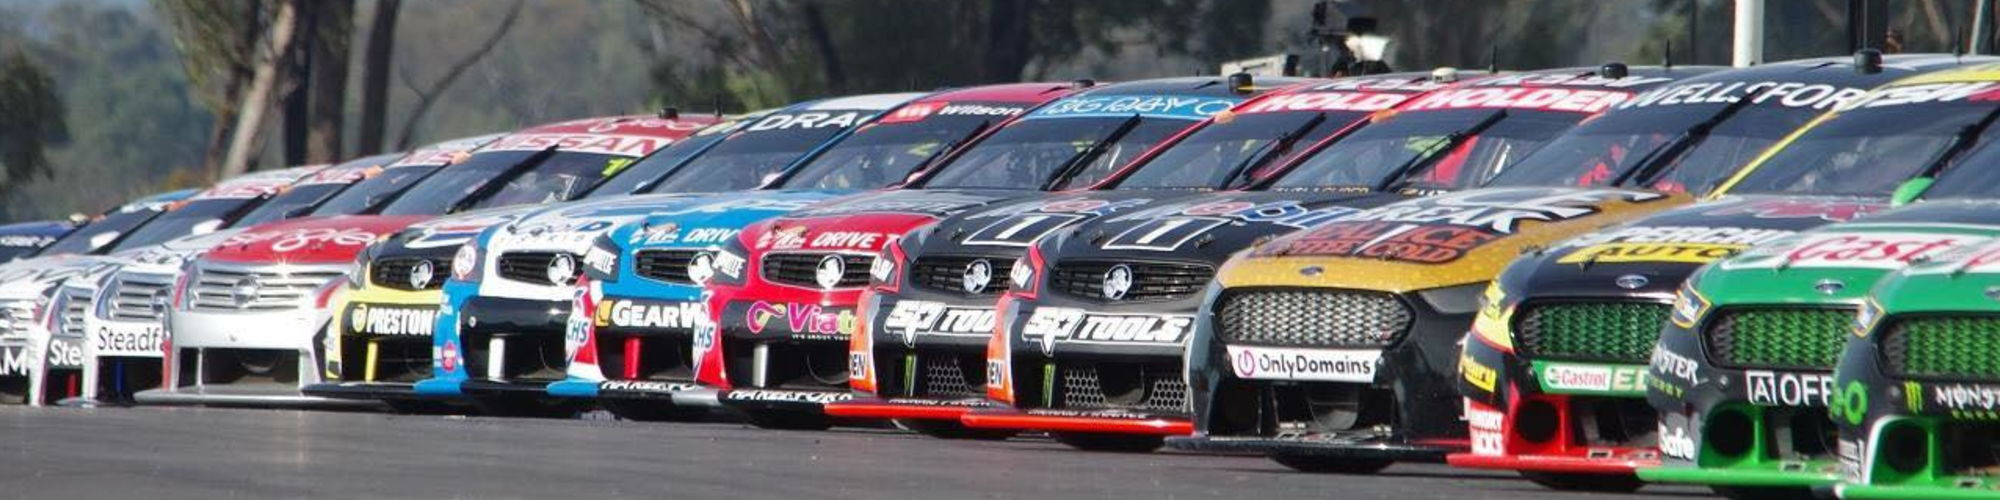 Benalla Auto Club Group cover image